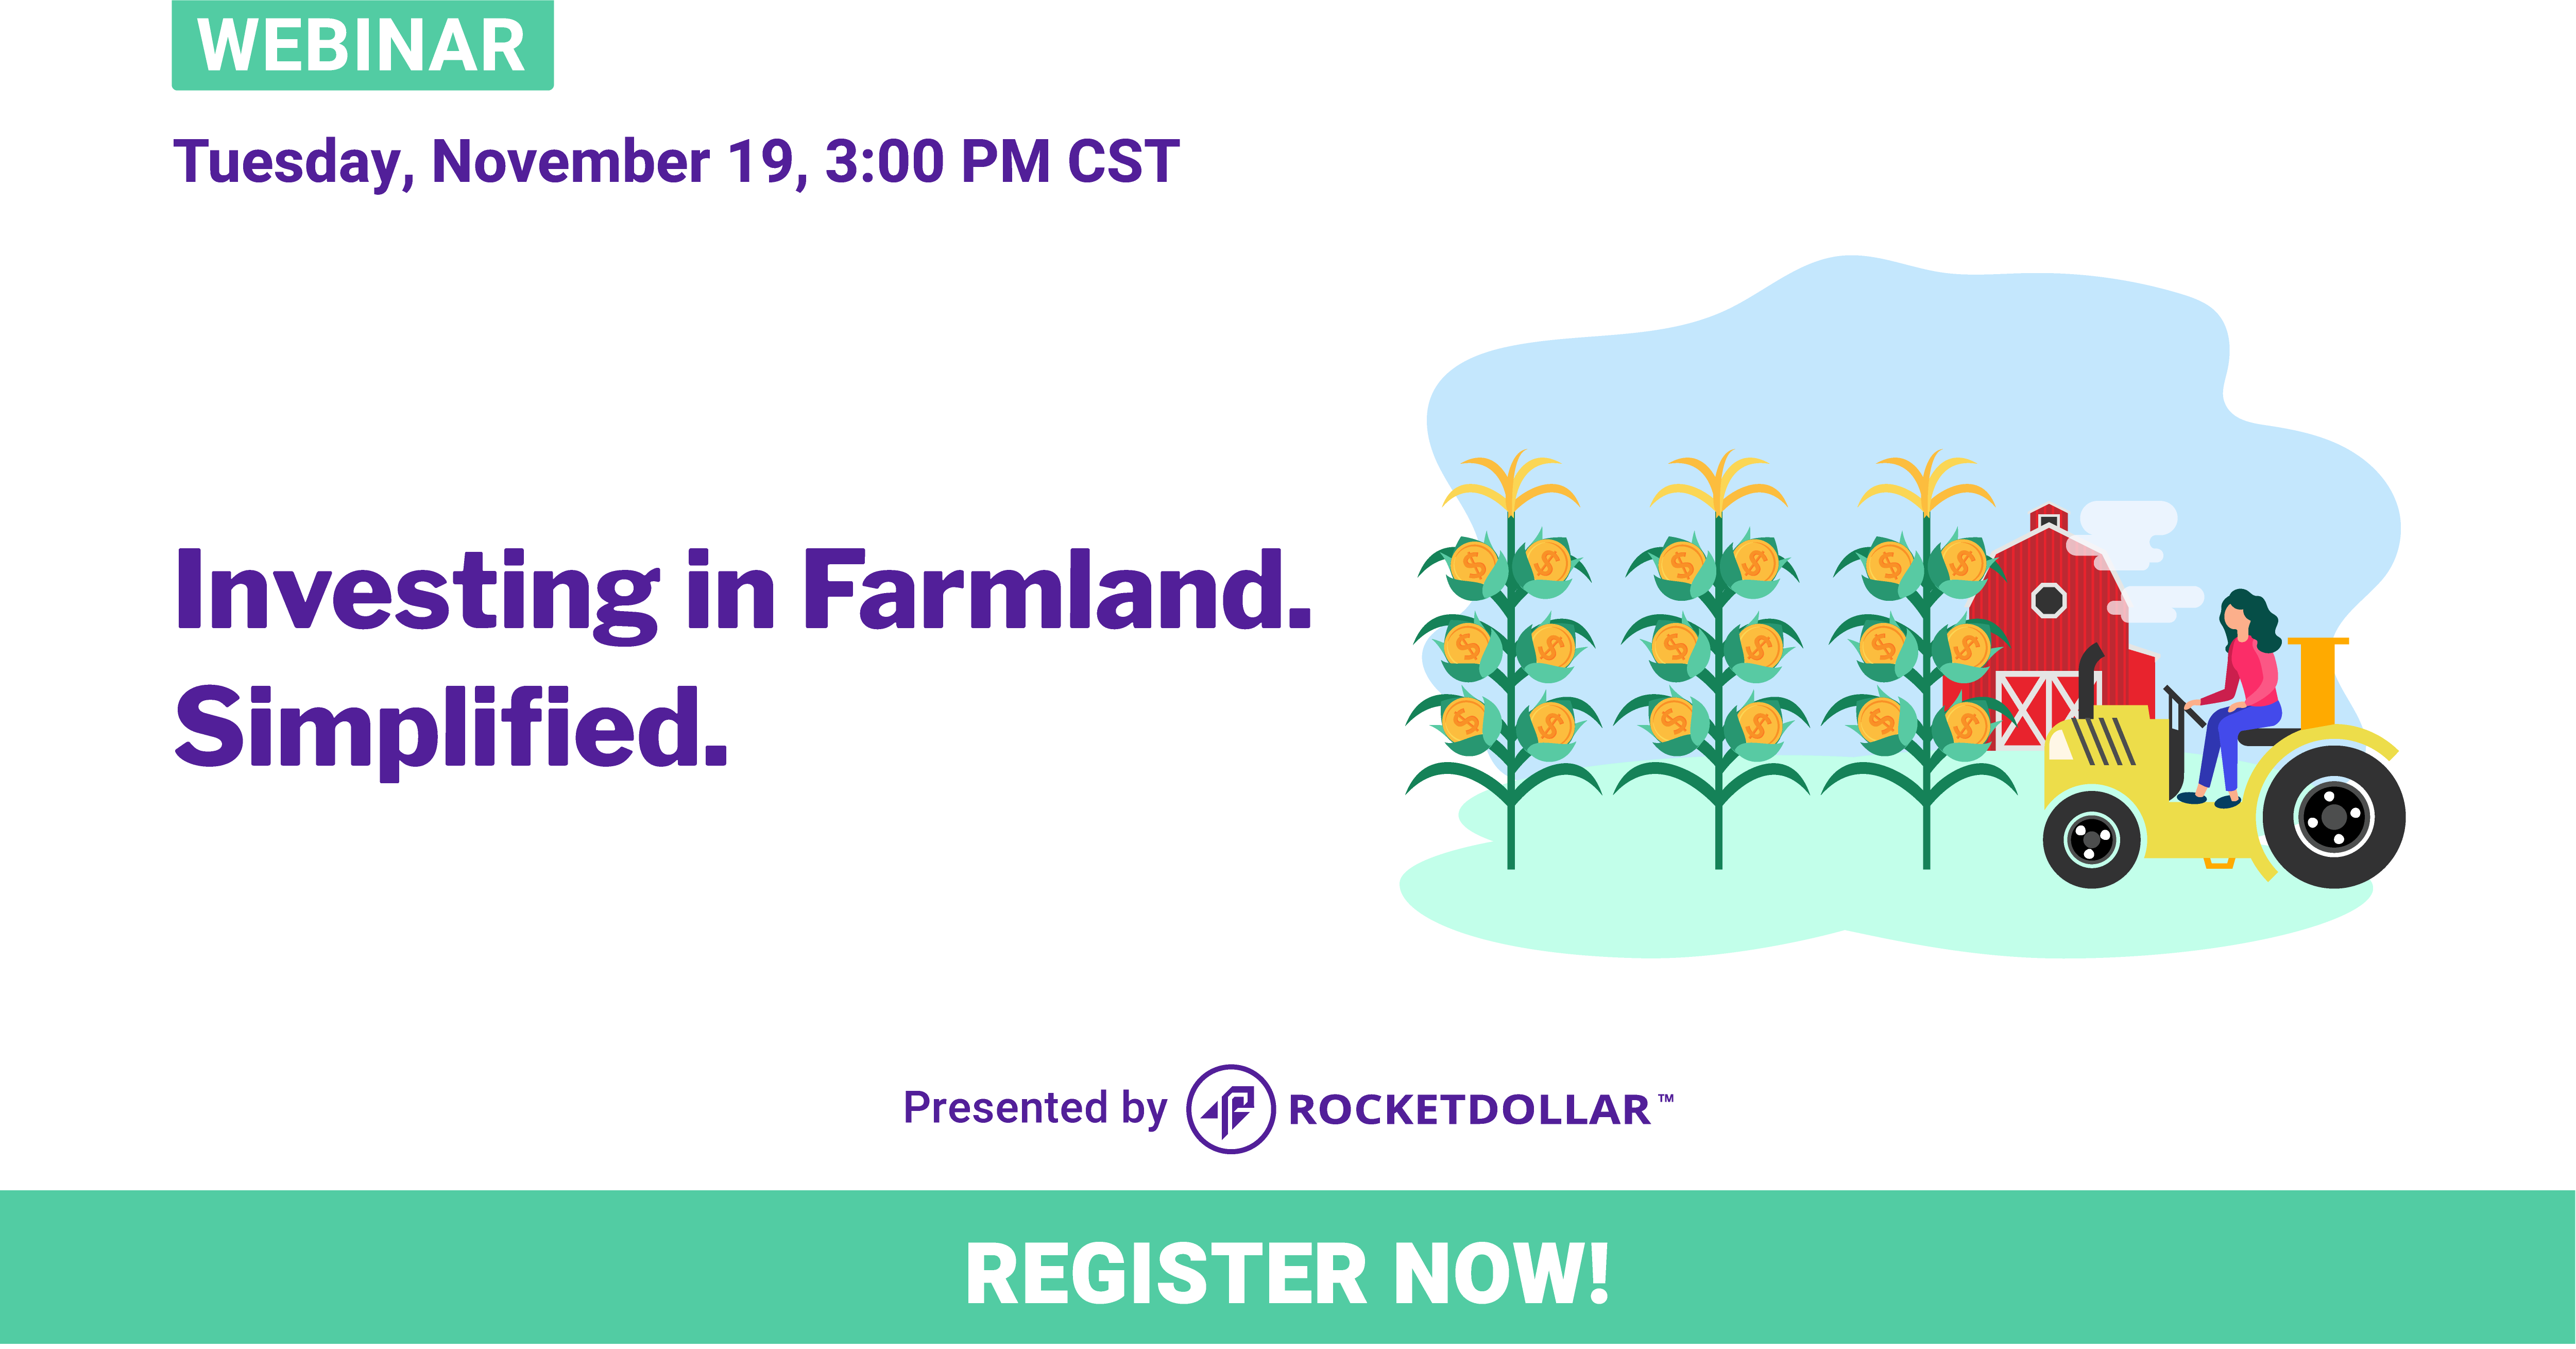 Investing in Farmland, Simplified